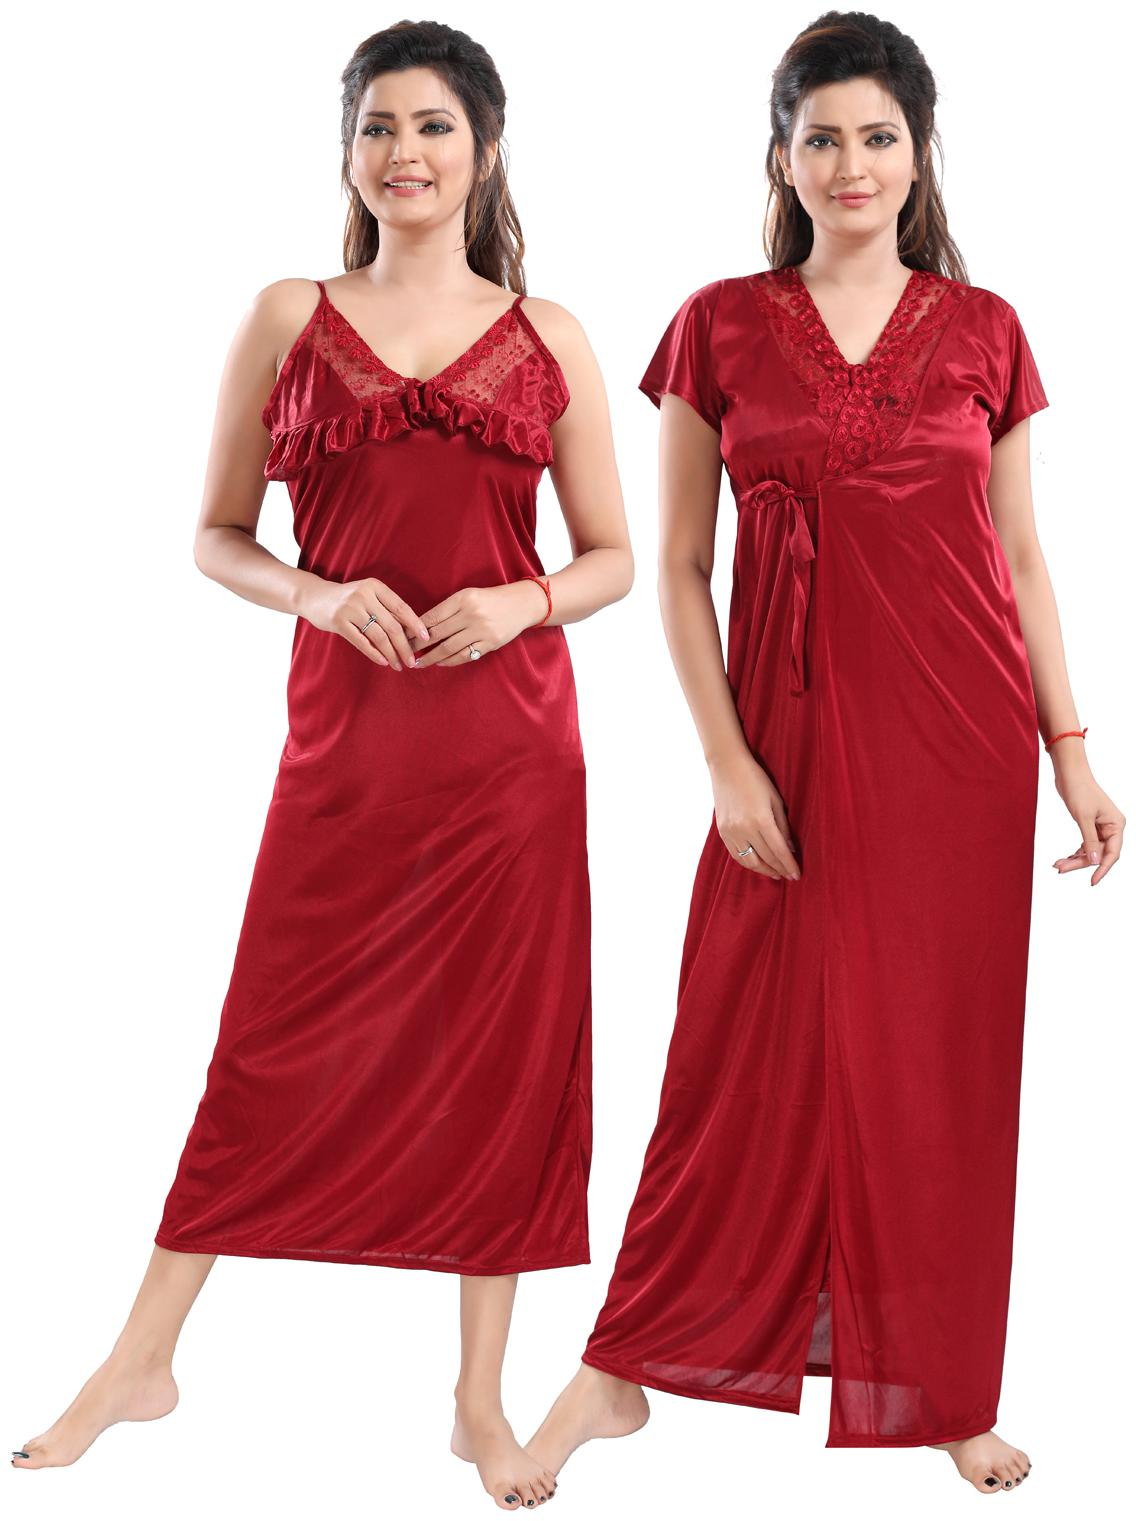 https://assetscdn1.paytm.com/images/catalog/product/A/AP/APPBE-YOU-WOMENBE-Y2313158429A34/1599632089319_0..jpg